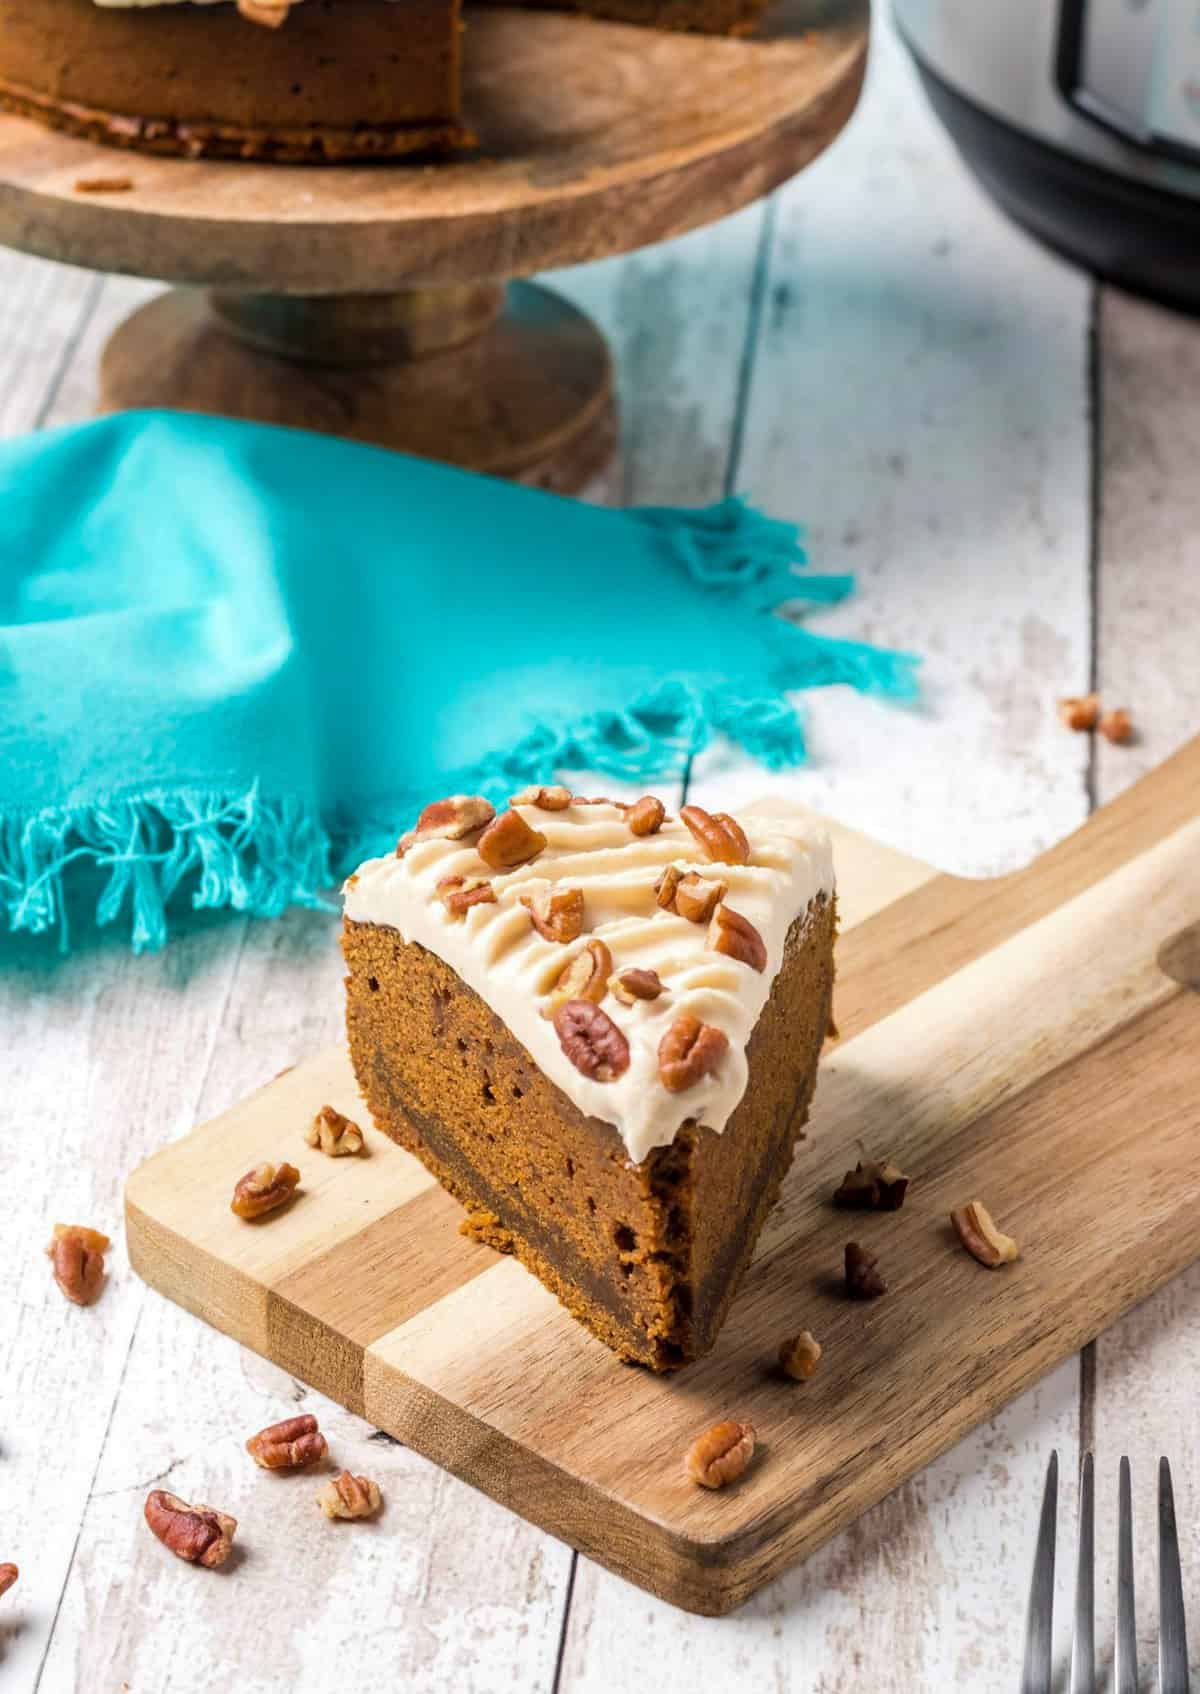 Slice of Gingerbread Cake on cutting board surrounded by nuts